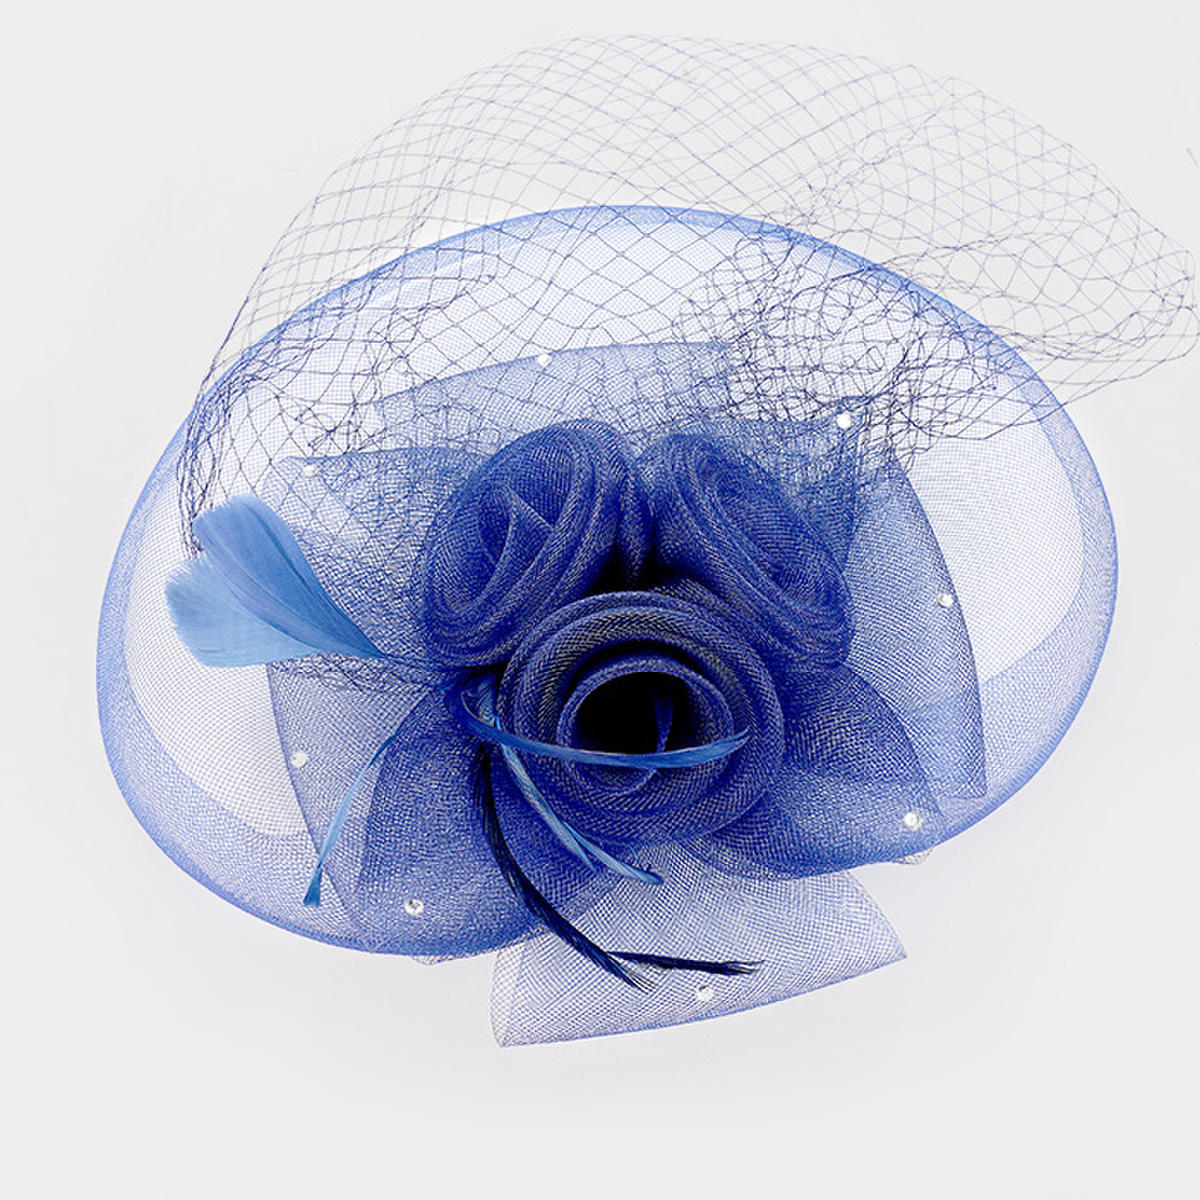 WONA TRADING INC - Rhinestone Detail Flower Fascinator